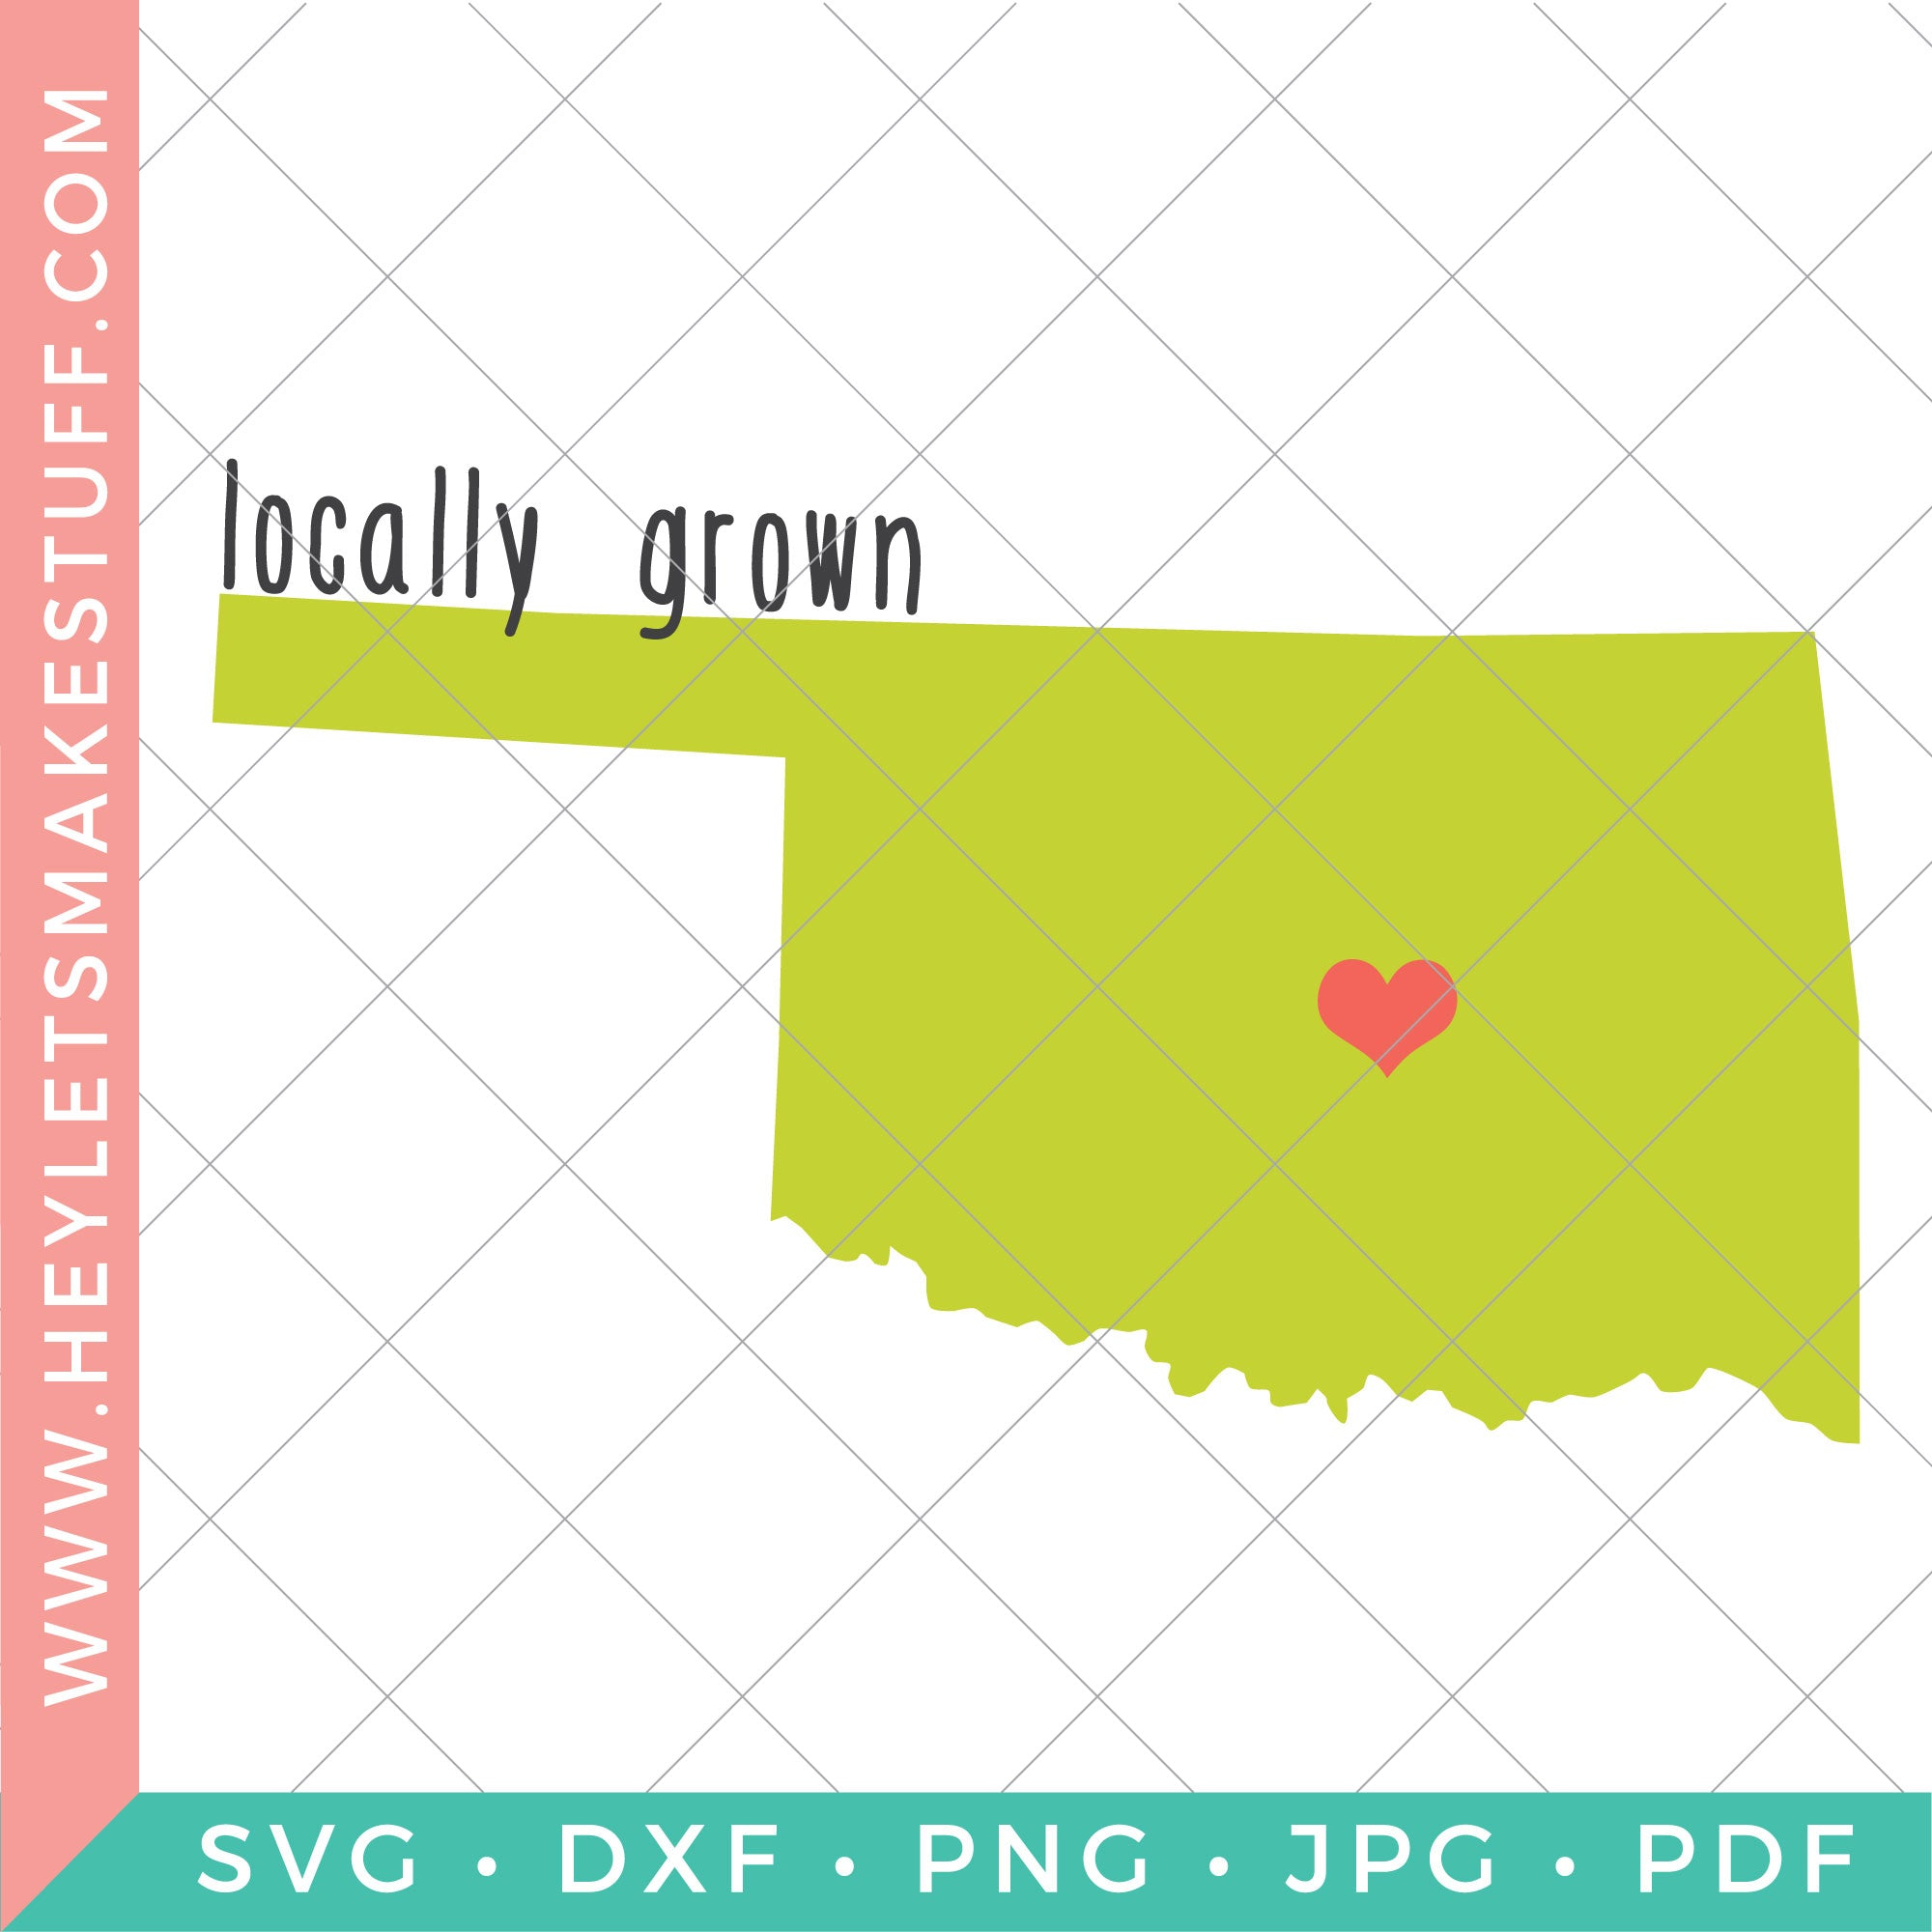 Locally Grown - Oklahoma